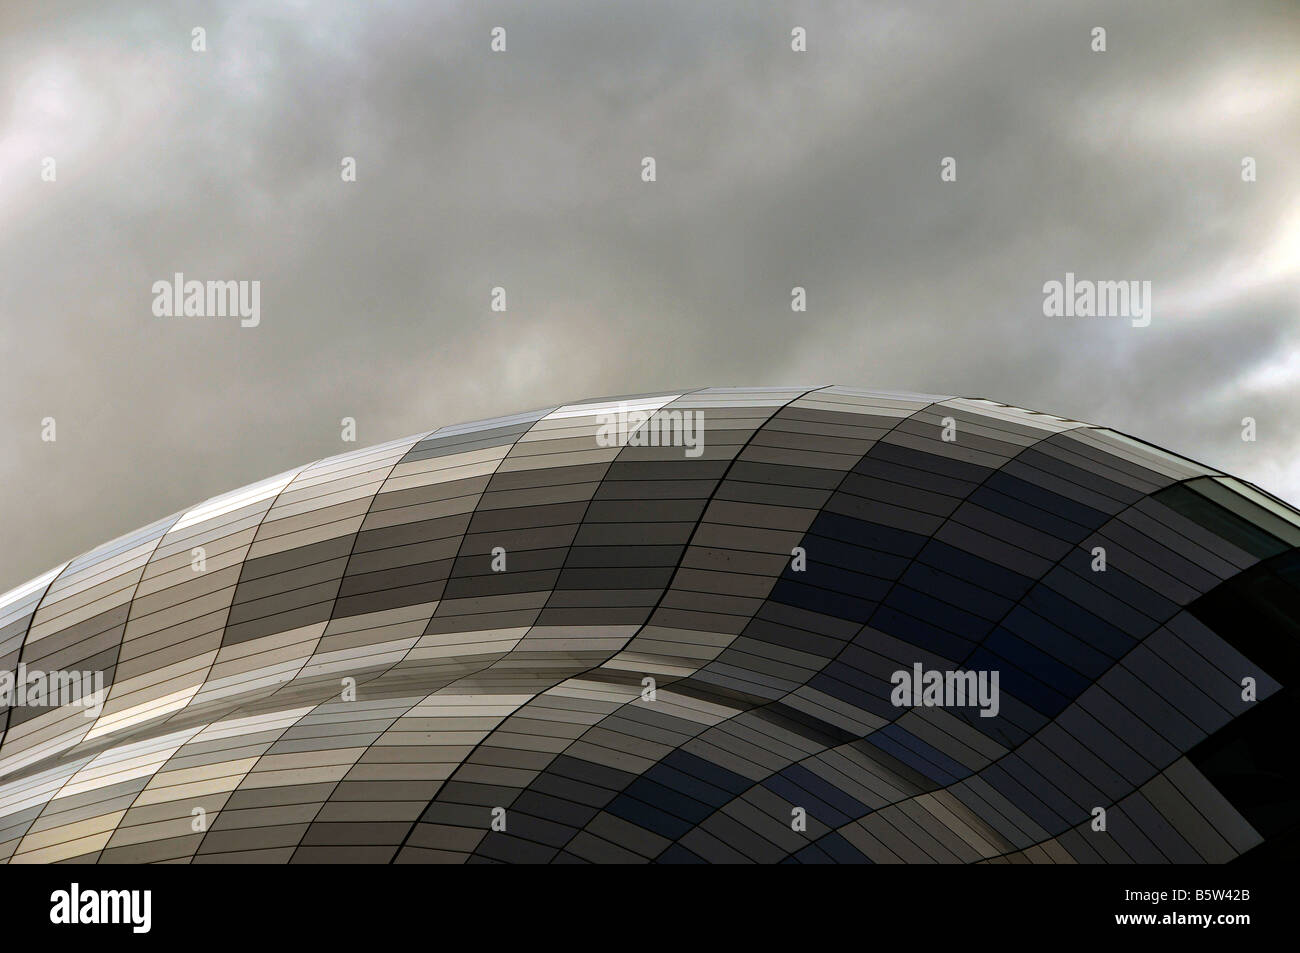 view of the glass roof of the gateshead sage international music centre - Stock Image